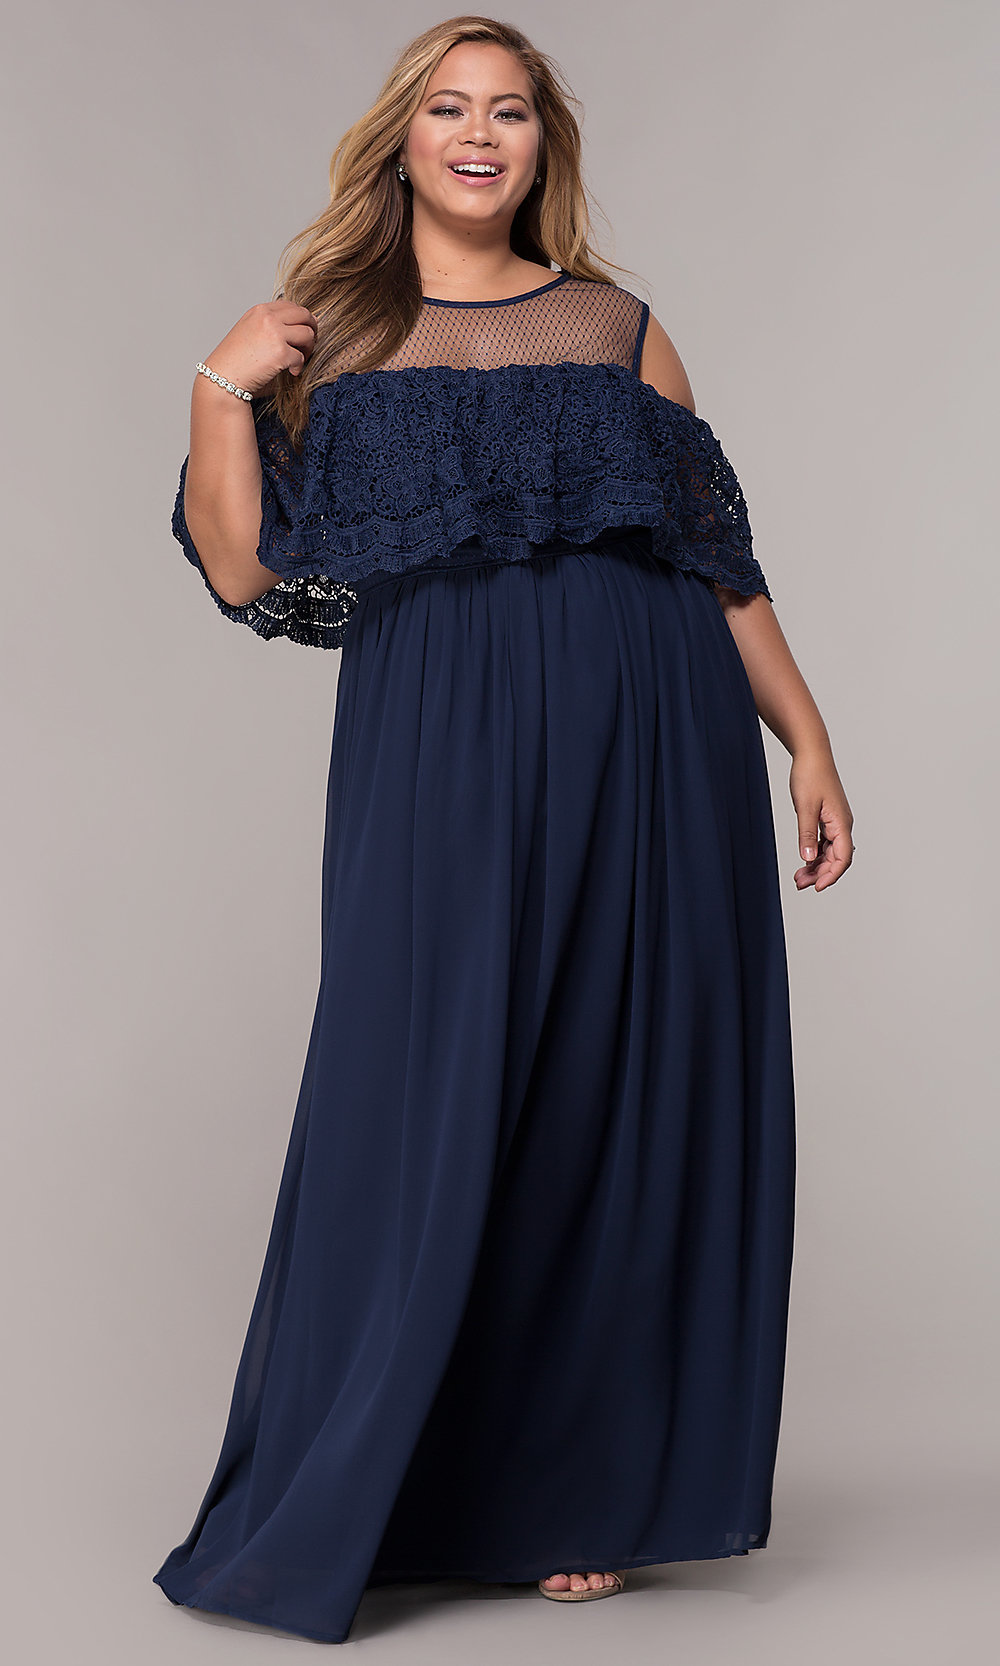 Plus-Size Formal Long Prom Dress with Lace Ruffle